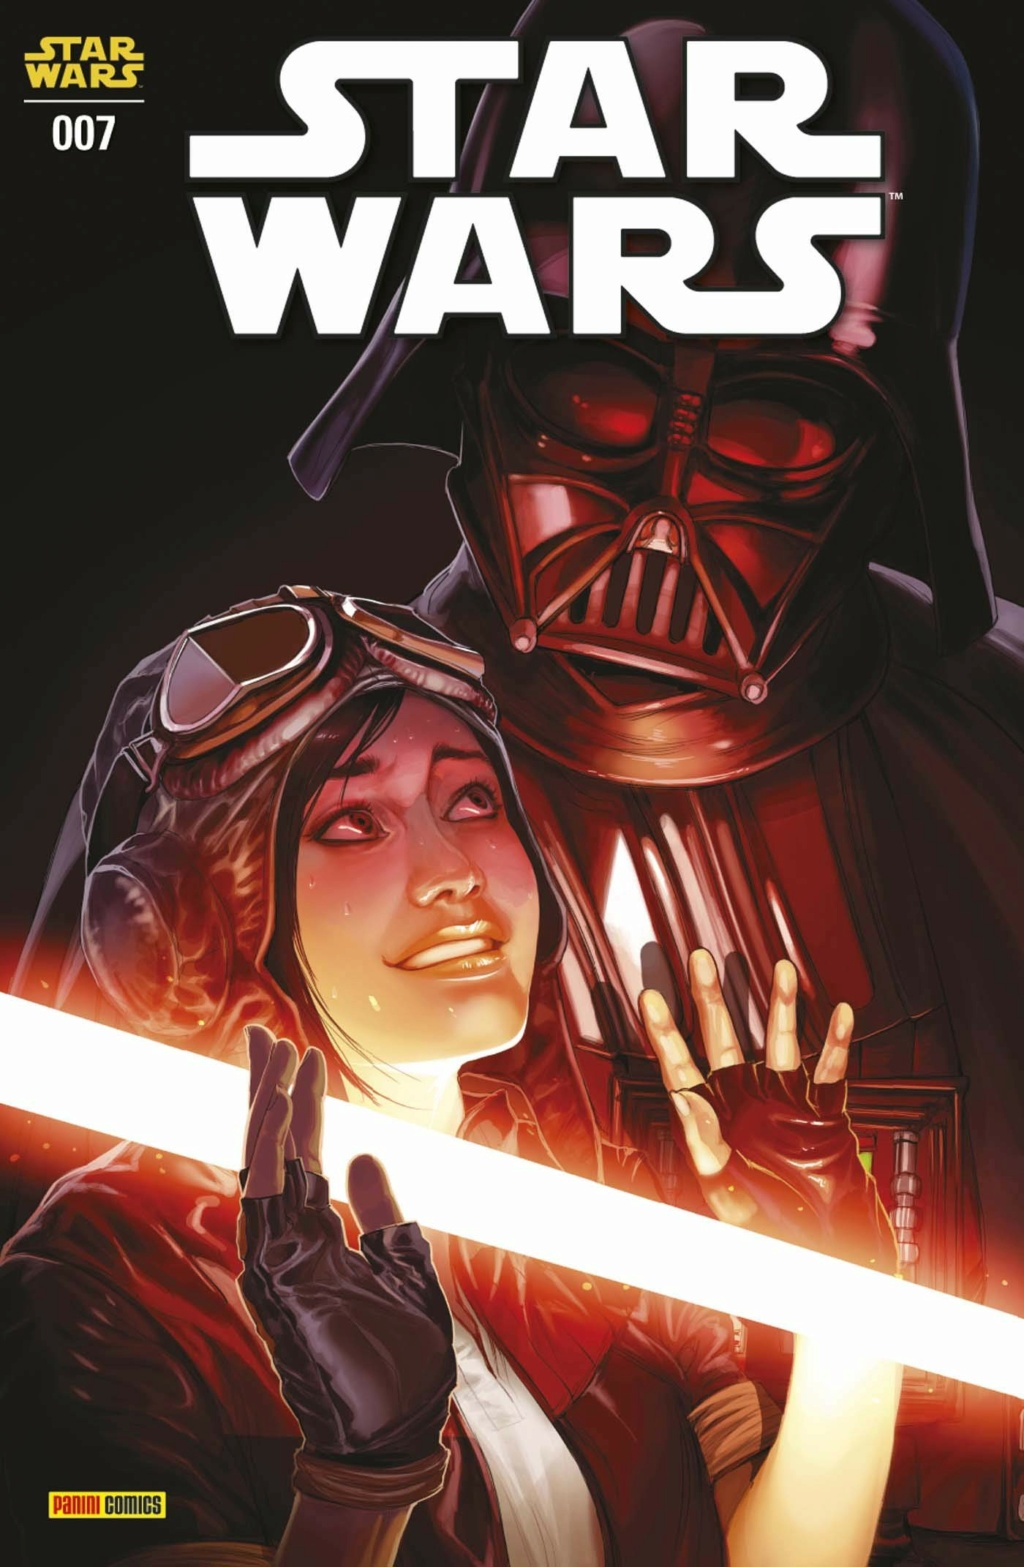 SOFTCOVER STAR WARS #07 V4 (40) PANINI - OCTOBRE 2020 07_off10